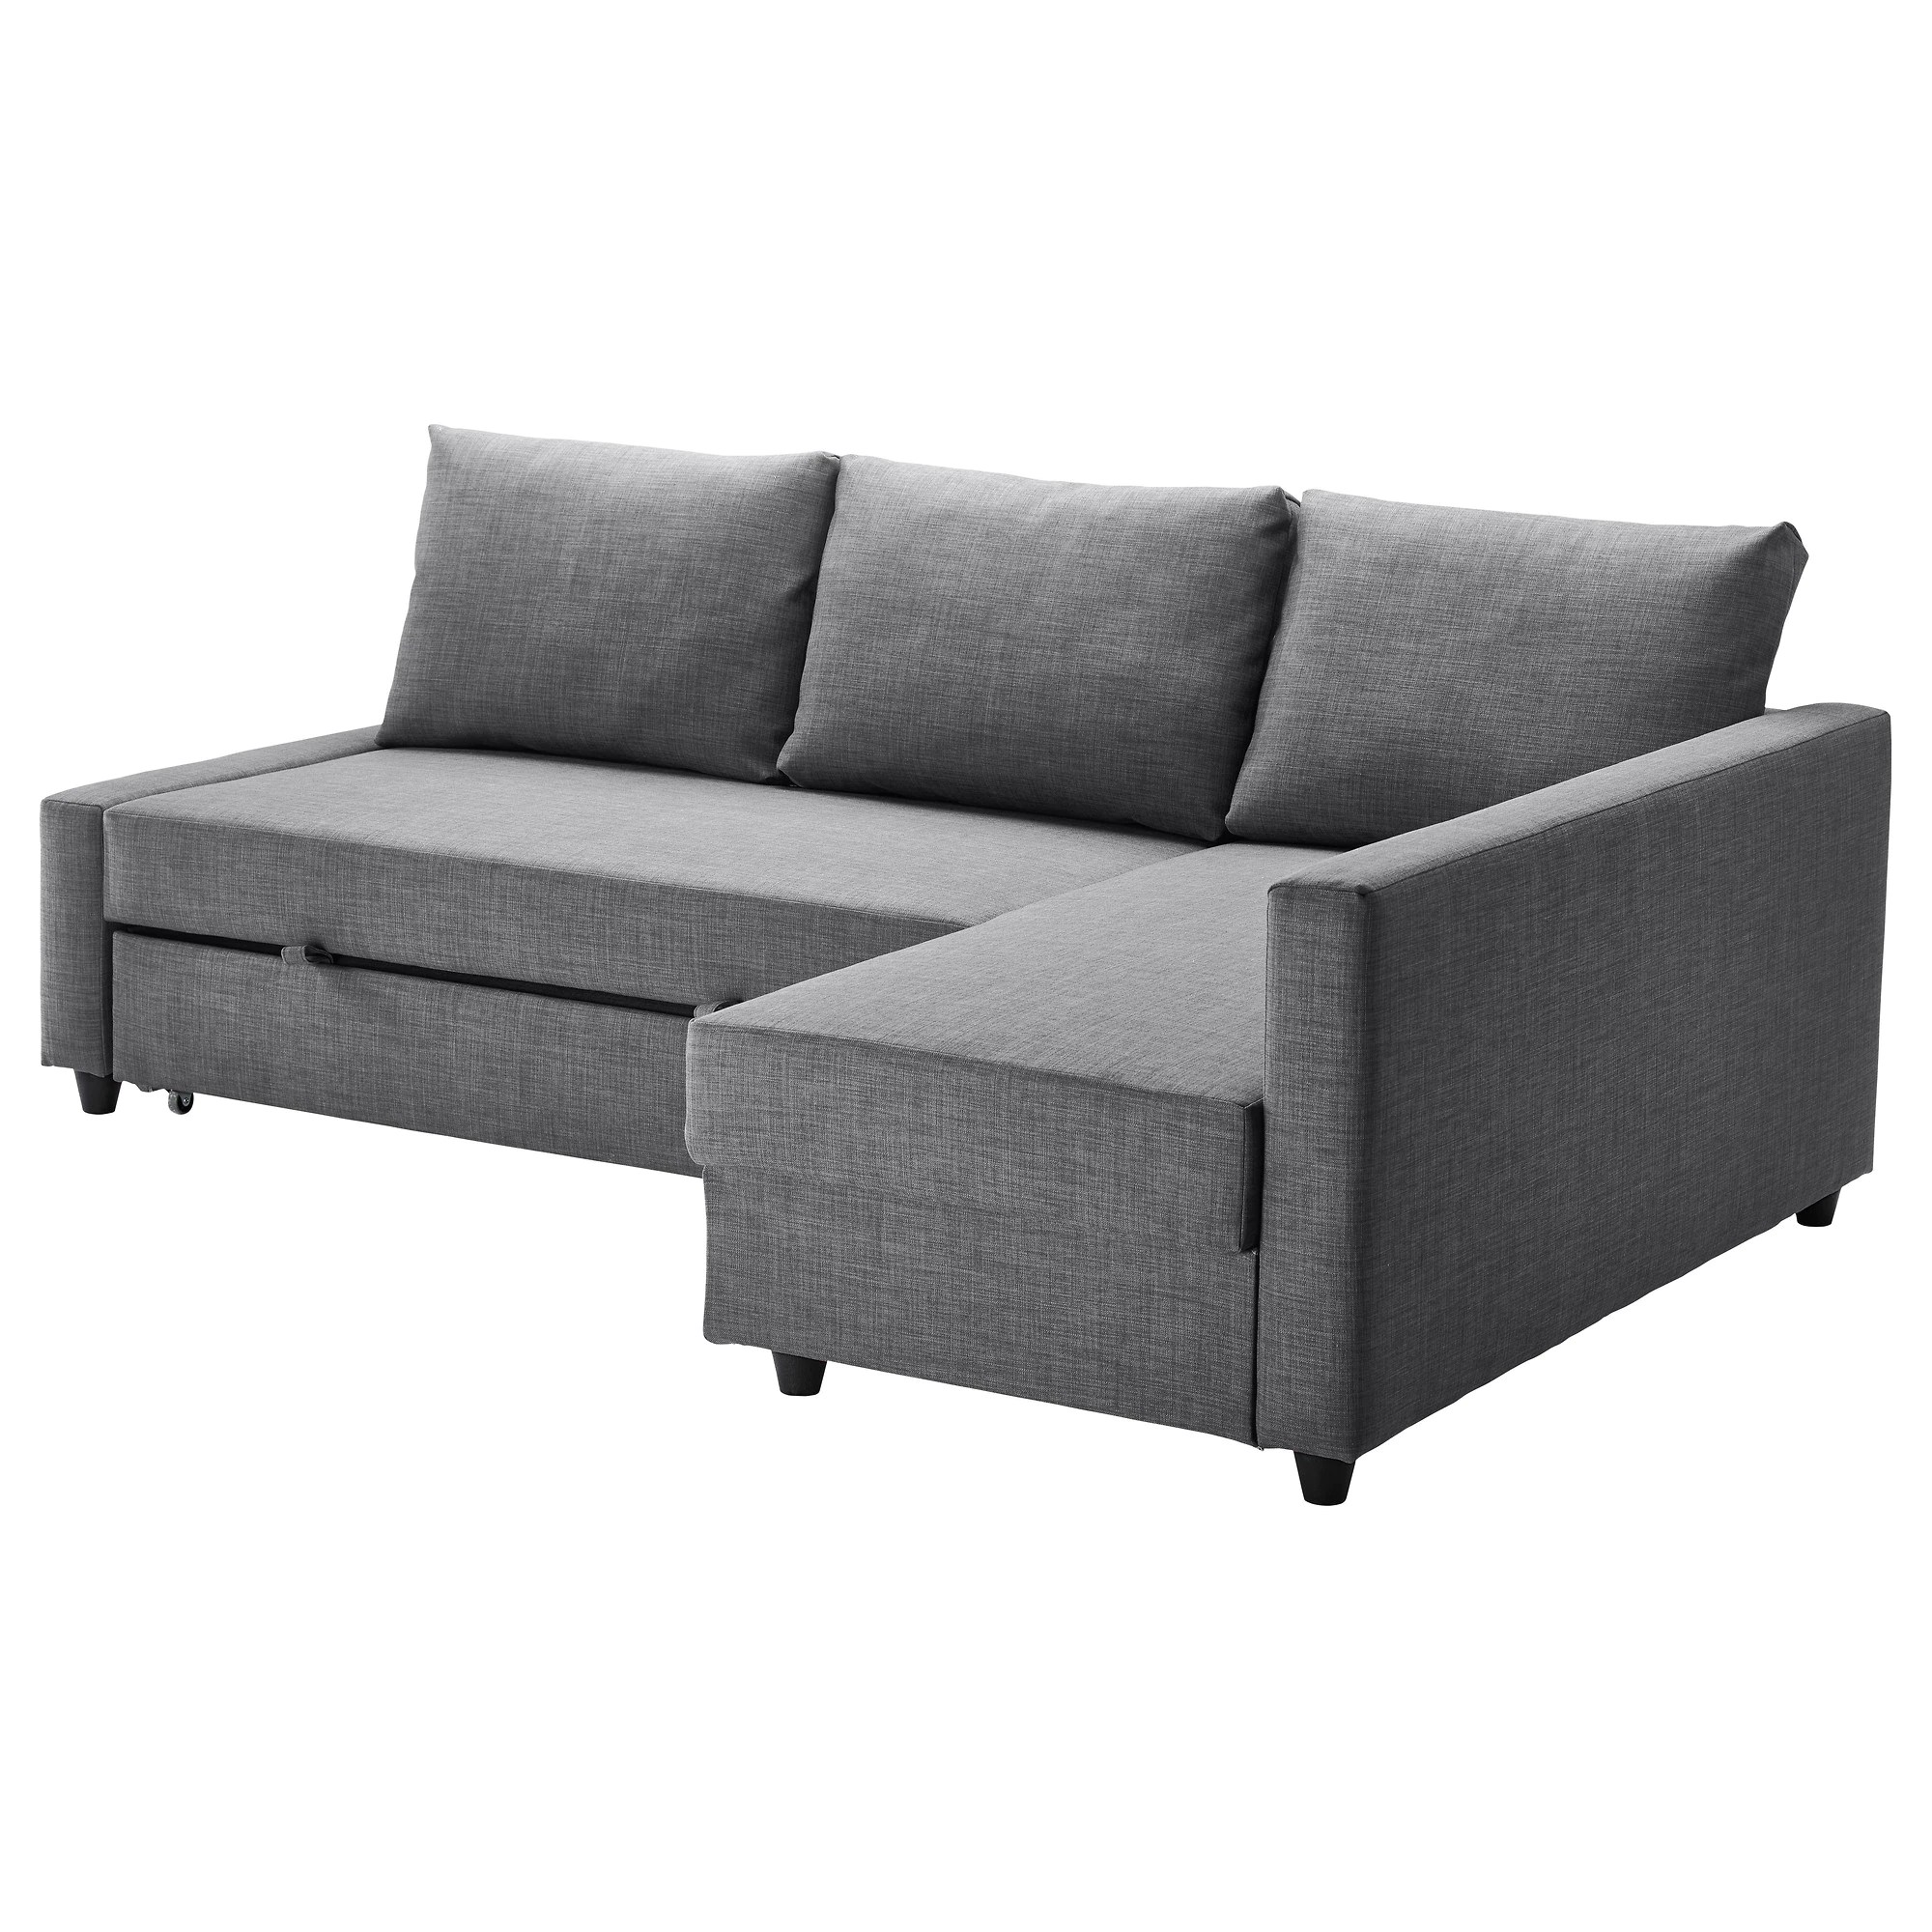 Sofa Ikea Oferta Corner Sofa Bed With Storage Friheten Skiftebo Dark Grey